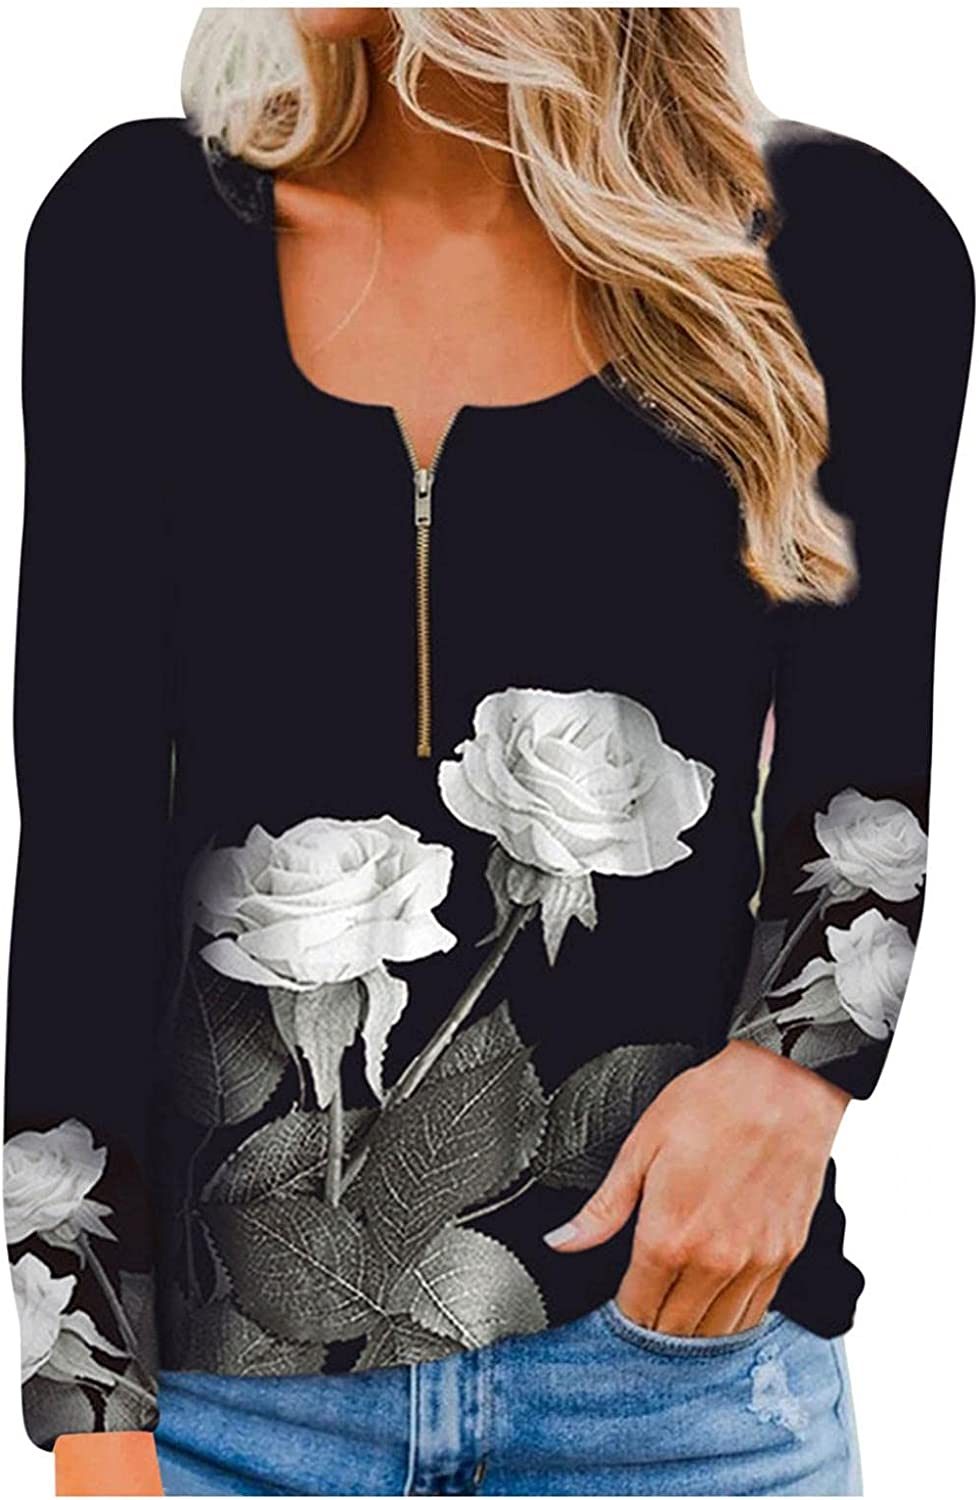 Women's Casual T-Shirt Plus Size Tunic Tops Sexy Floral V Neck T Shirts Blouse Tops to Wear with Leggings Plus Size